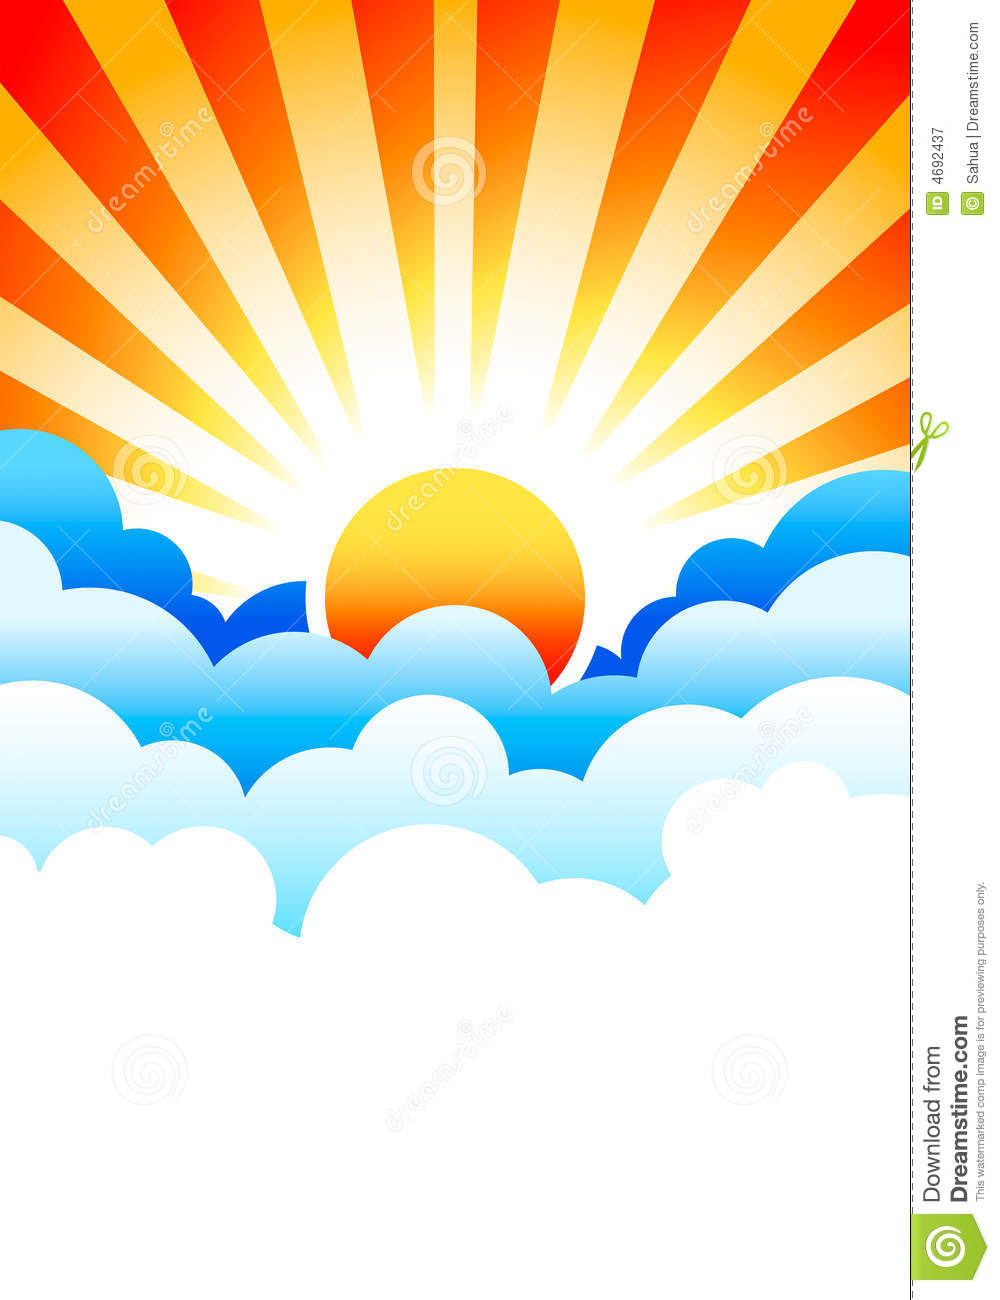 Sun Rising In Clouds Stock Vector Illustration Of Concept